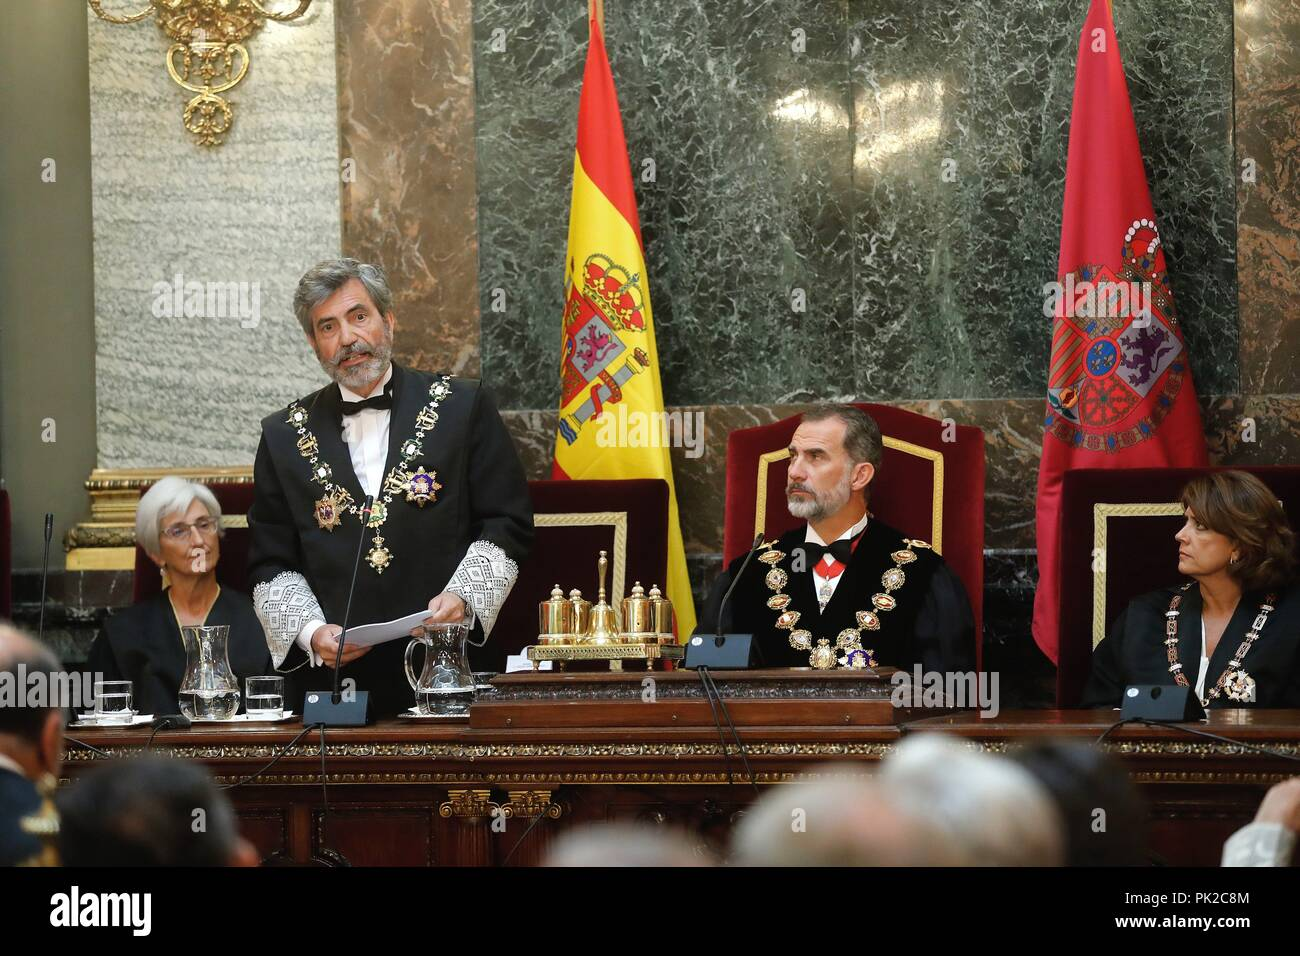 Spain's King Felipe VI (2R) next to Spanish Justice Minister